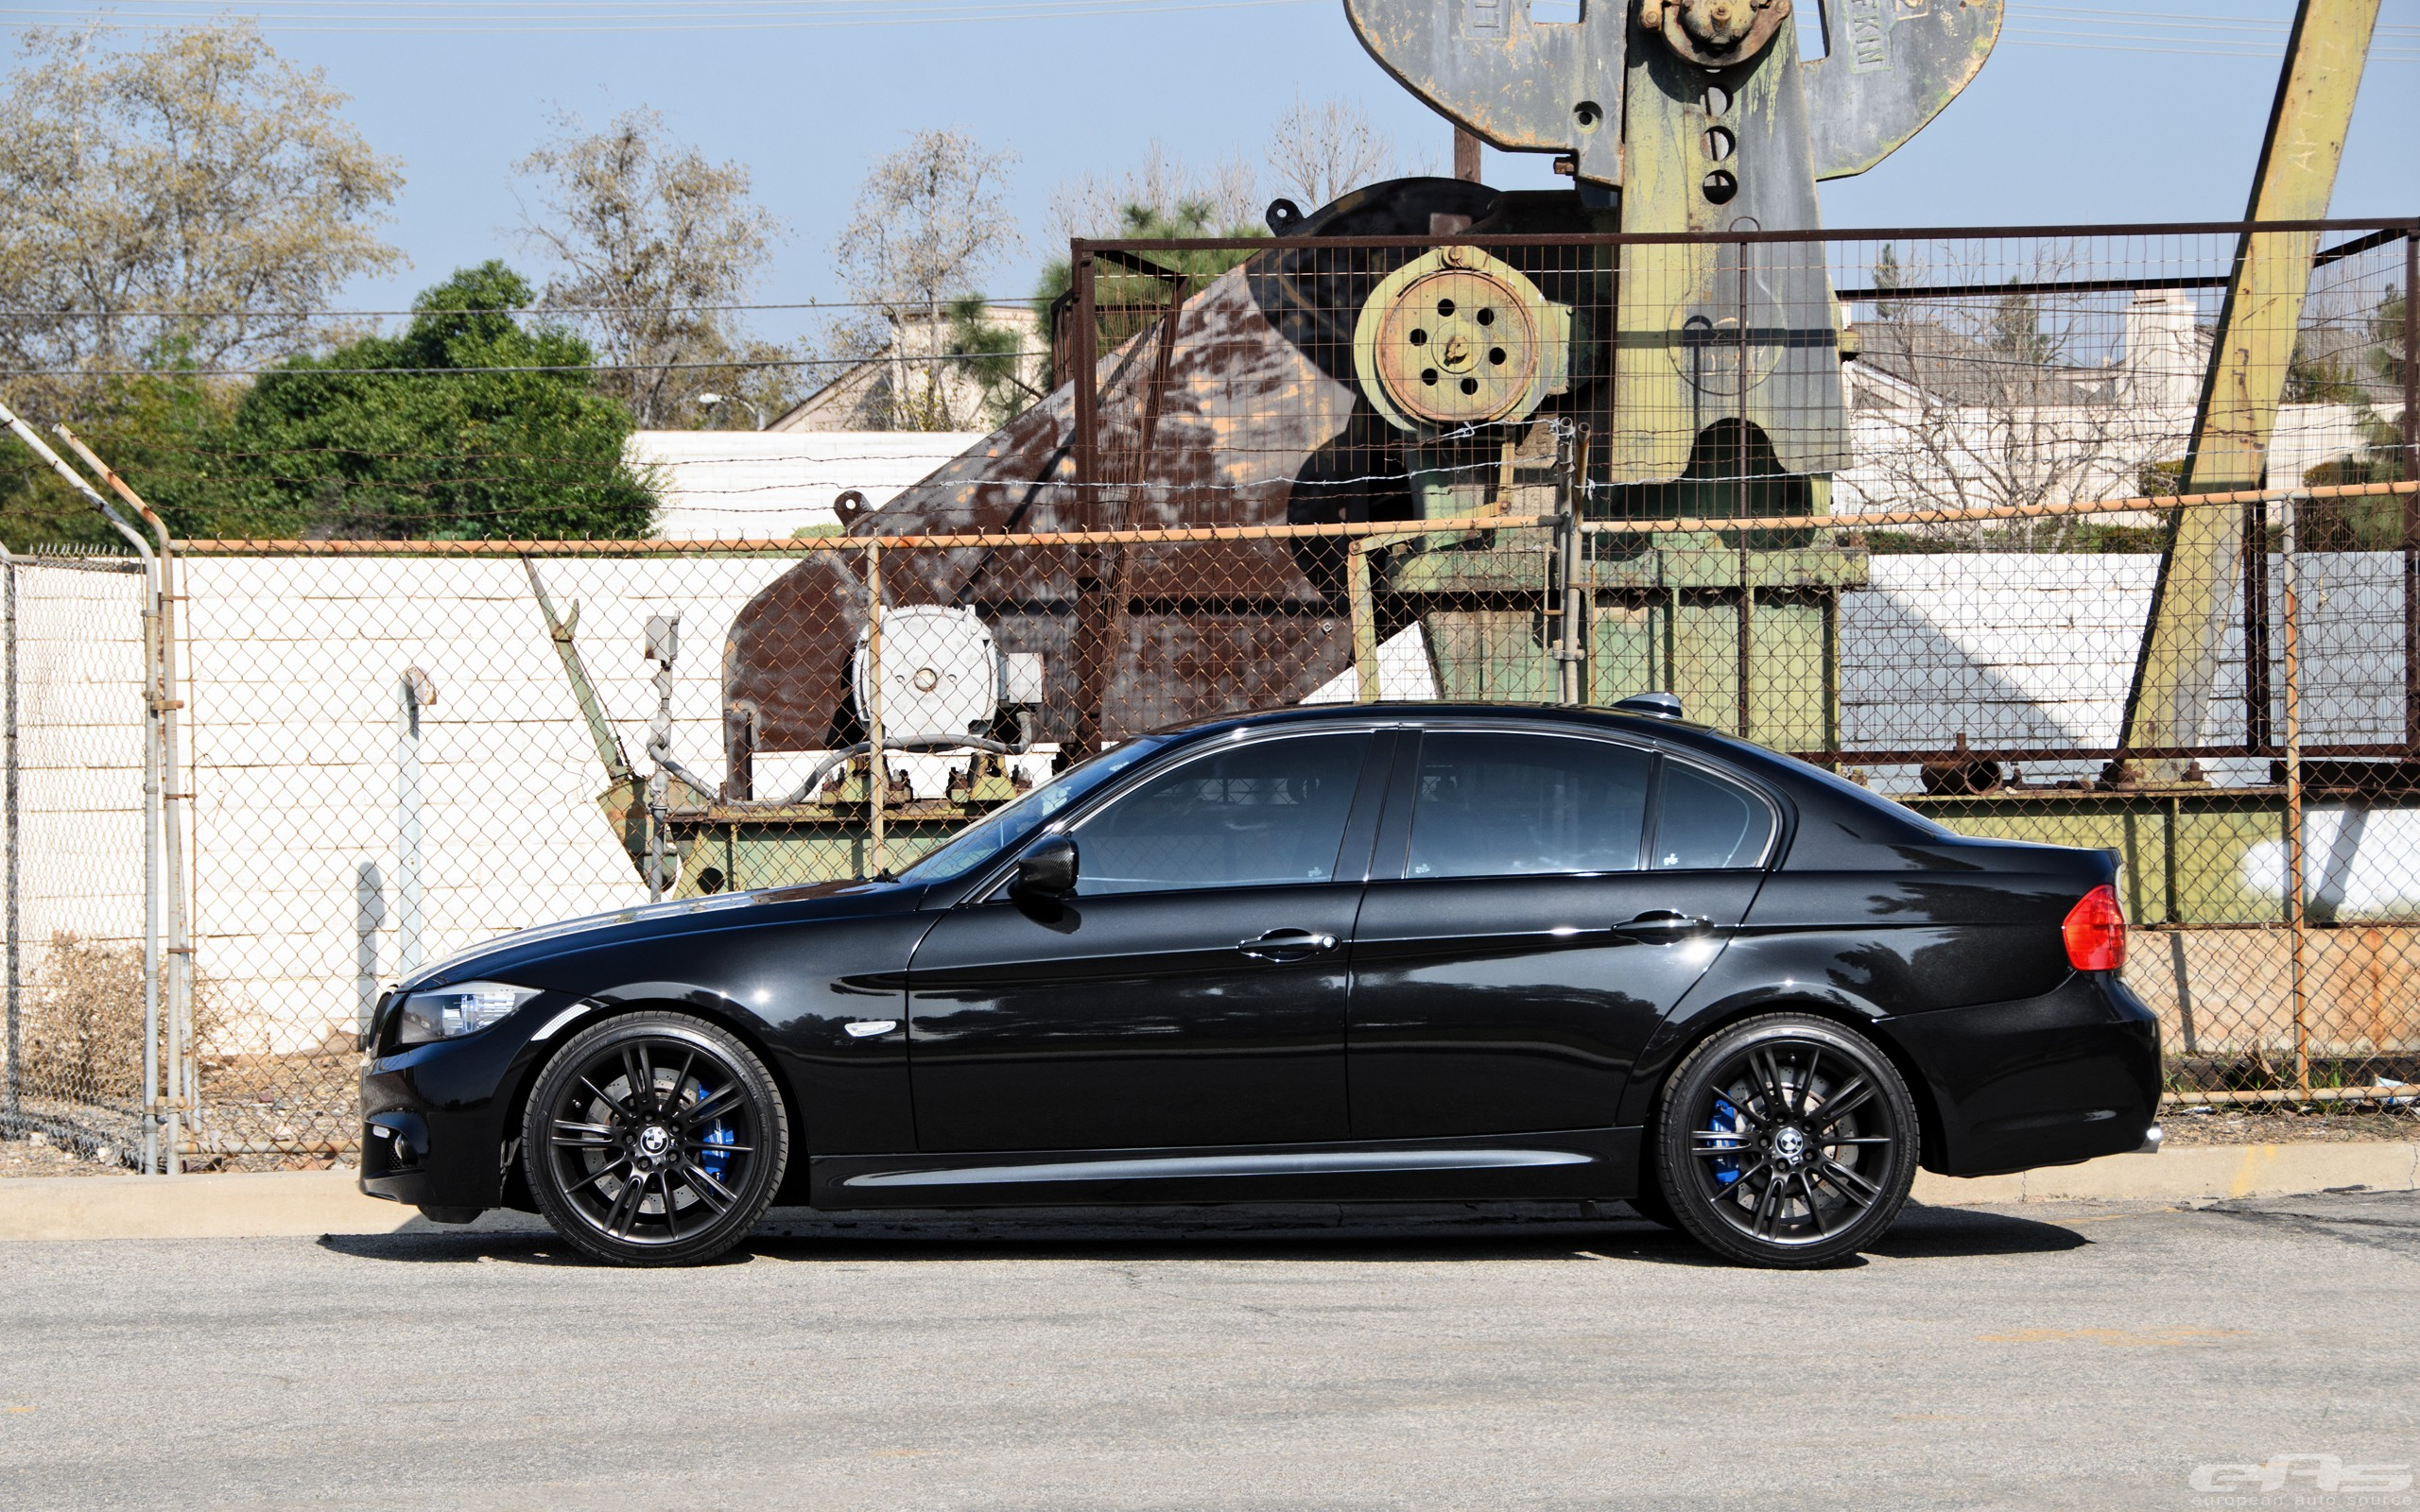 This BMW E I Just Put Down WHP And Lbft Of Torque - Bmw 335i images